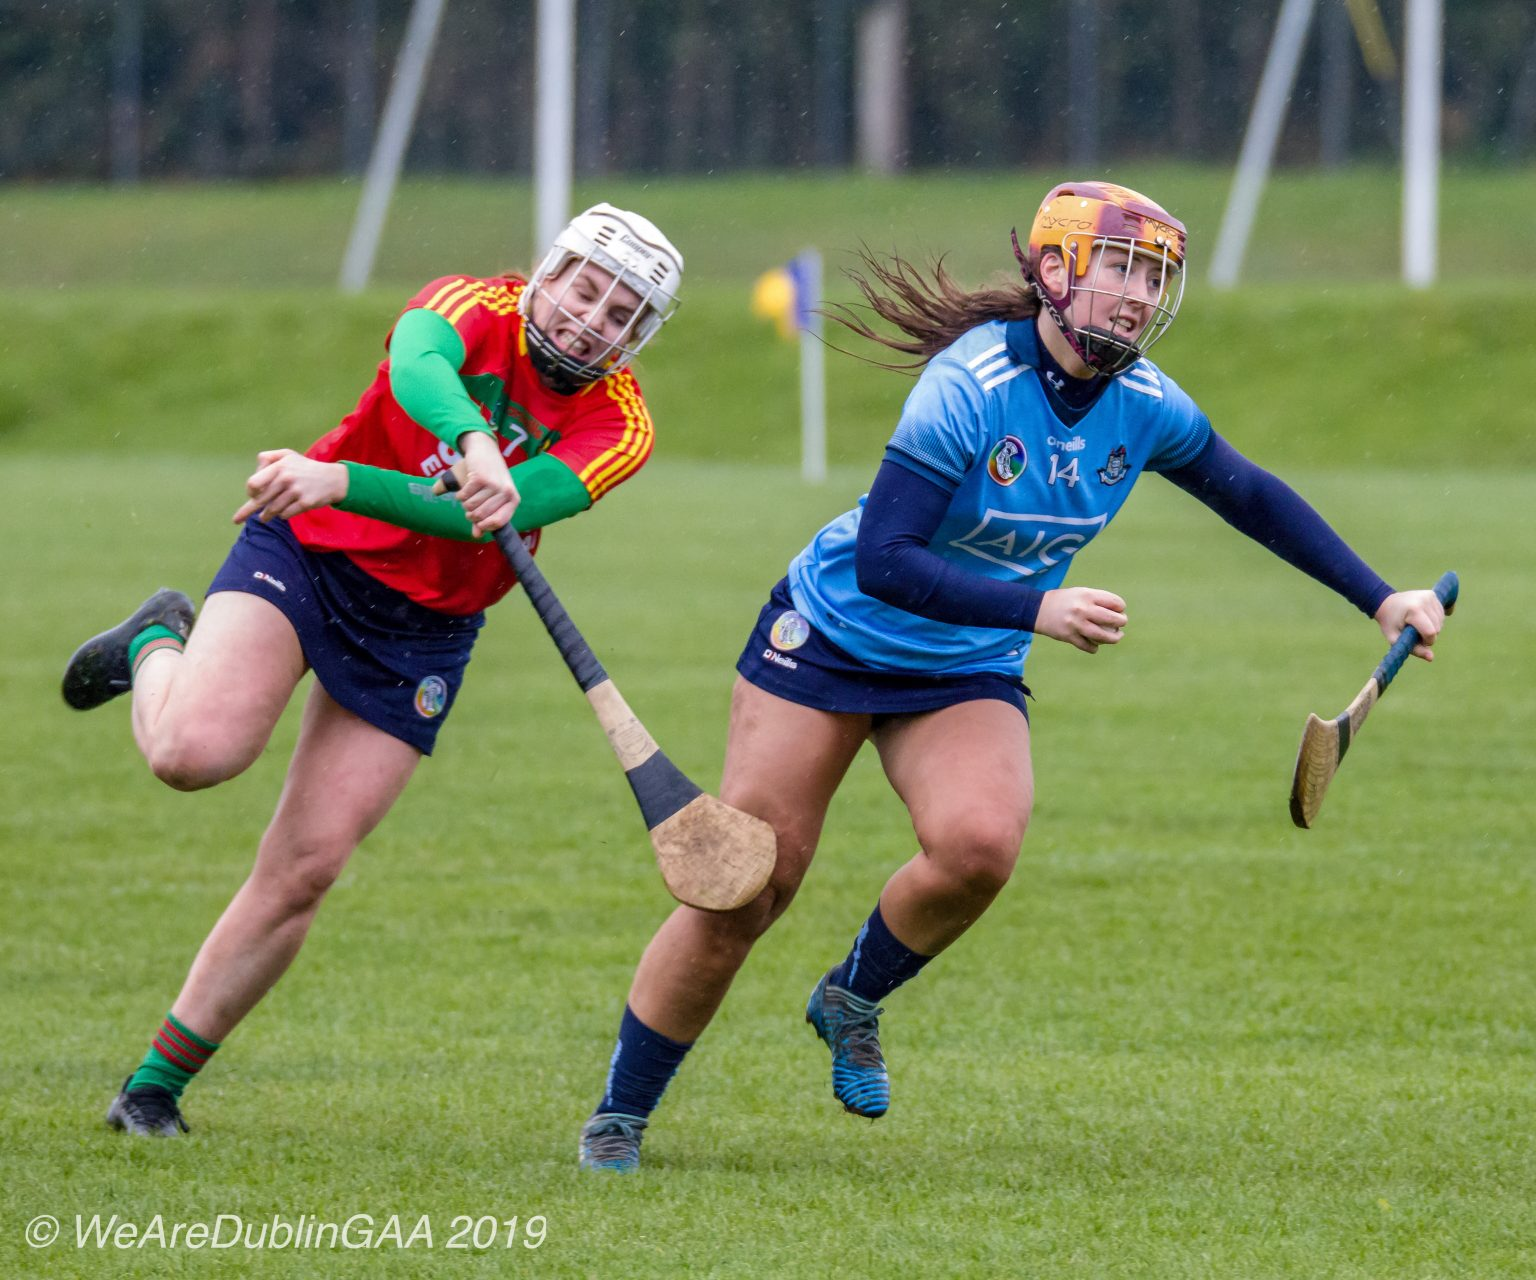 A Dublin Camogie player in a sky blue jersey, navy skort and yellow and wine helmets evades the tackle of a Carlow player in a red jersey, navy skort and white helmet during the relegation playoff game that Dublin won to retain their Division 2 status